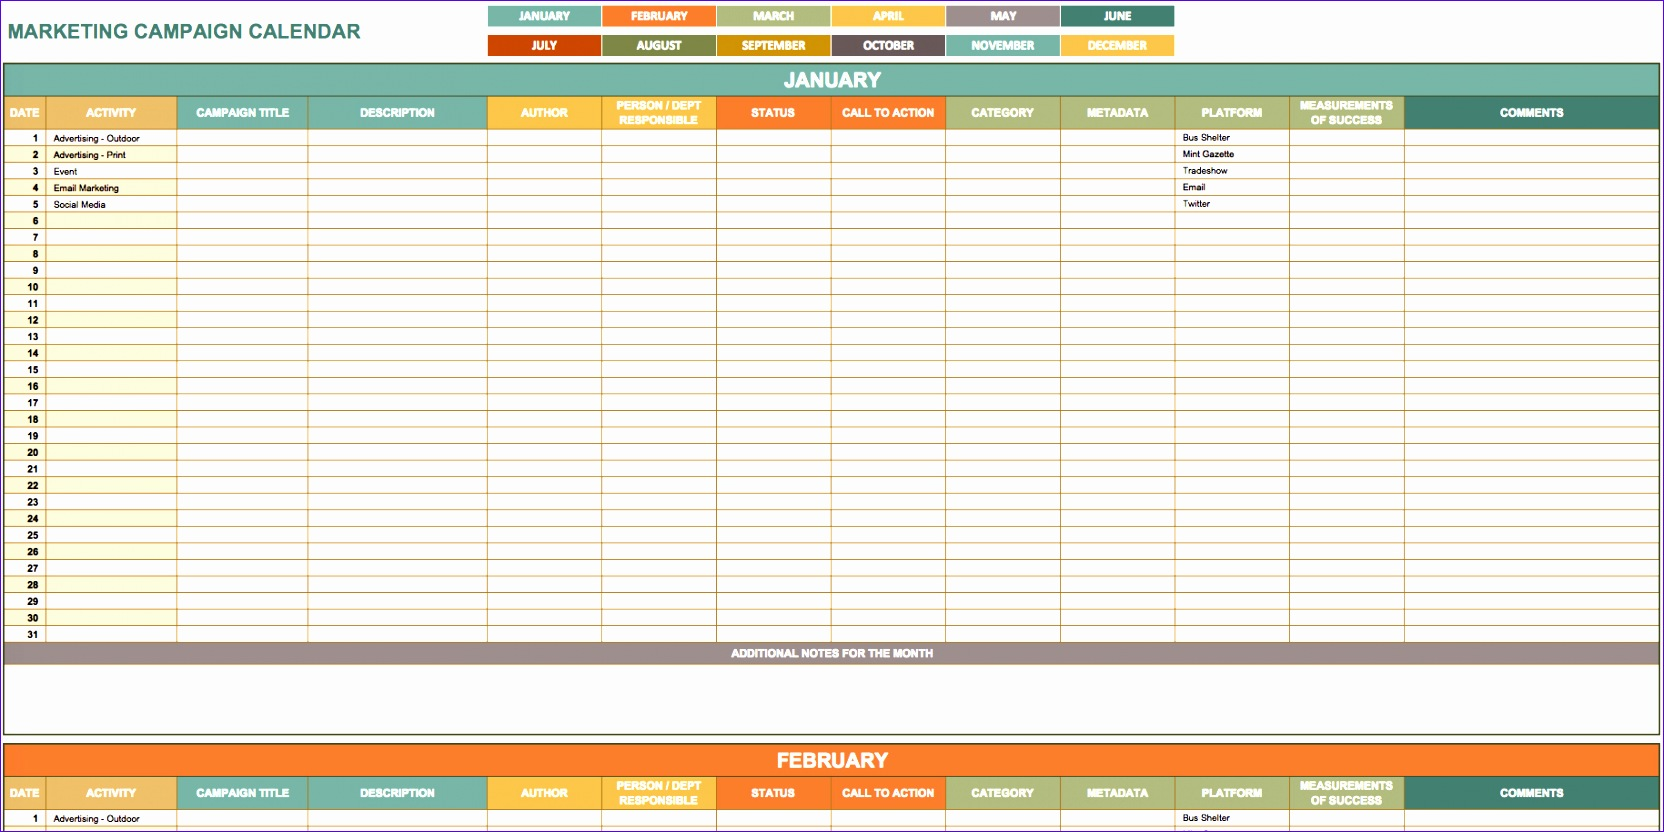 Media Schedule Template Excel Egese New 9 Free Marketing Calendar Templates for Excel Smartsheet